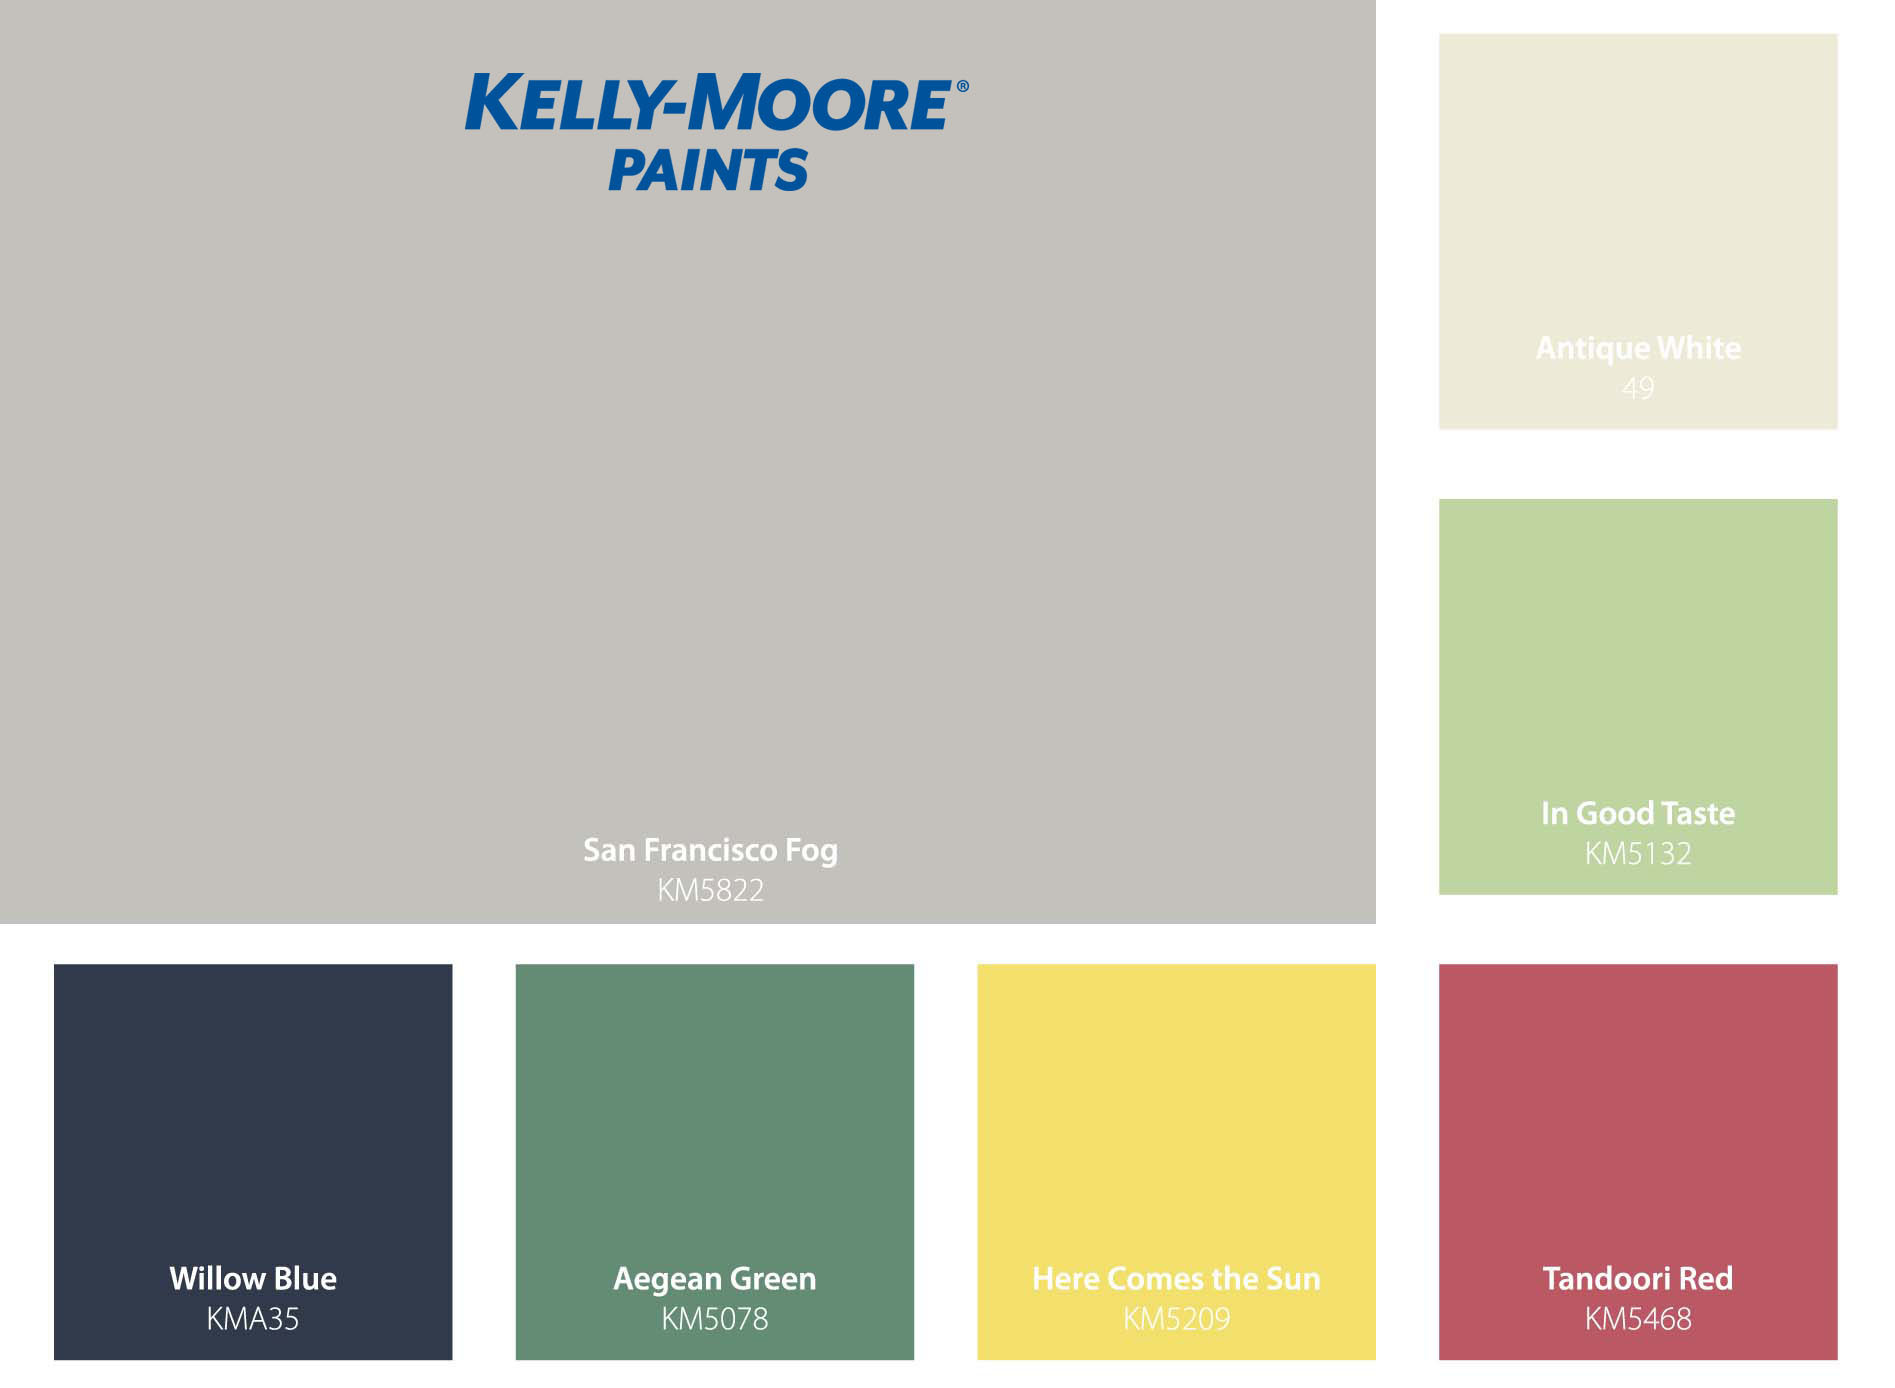 Best ideas about Kelly Moore Paint Colors . Save or Pin kelly moore paint colors 2017 Grasscloth Wallpaper Now.